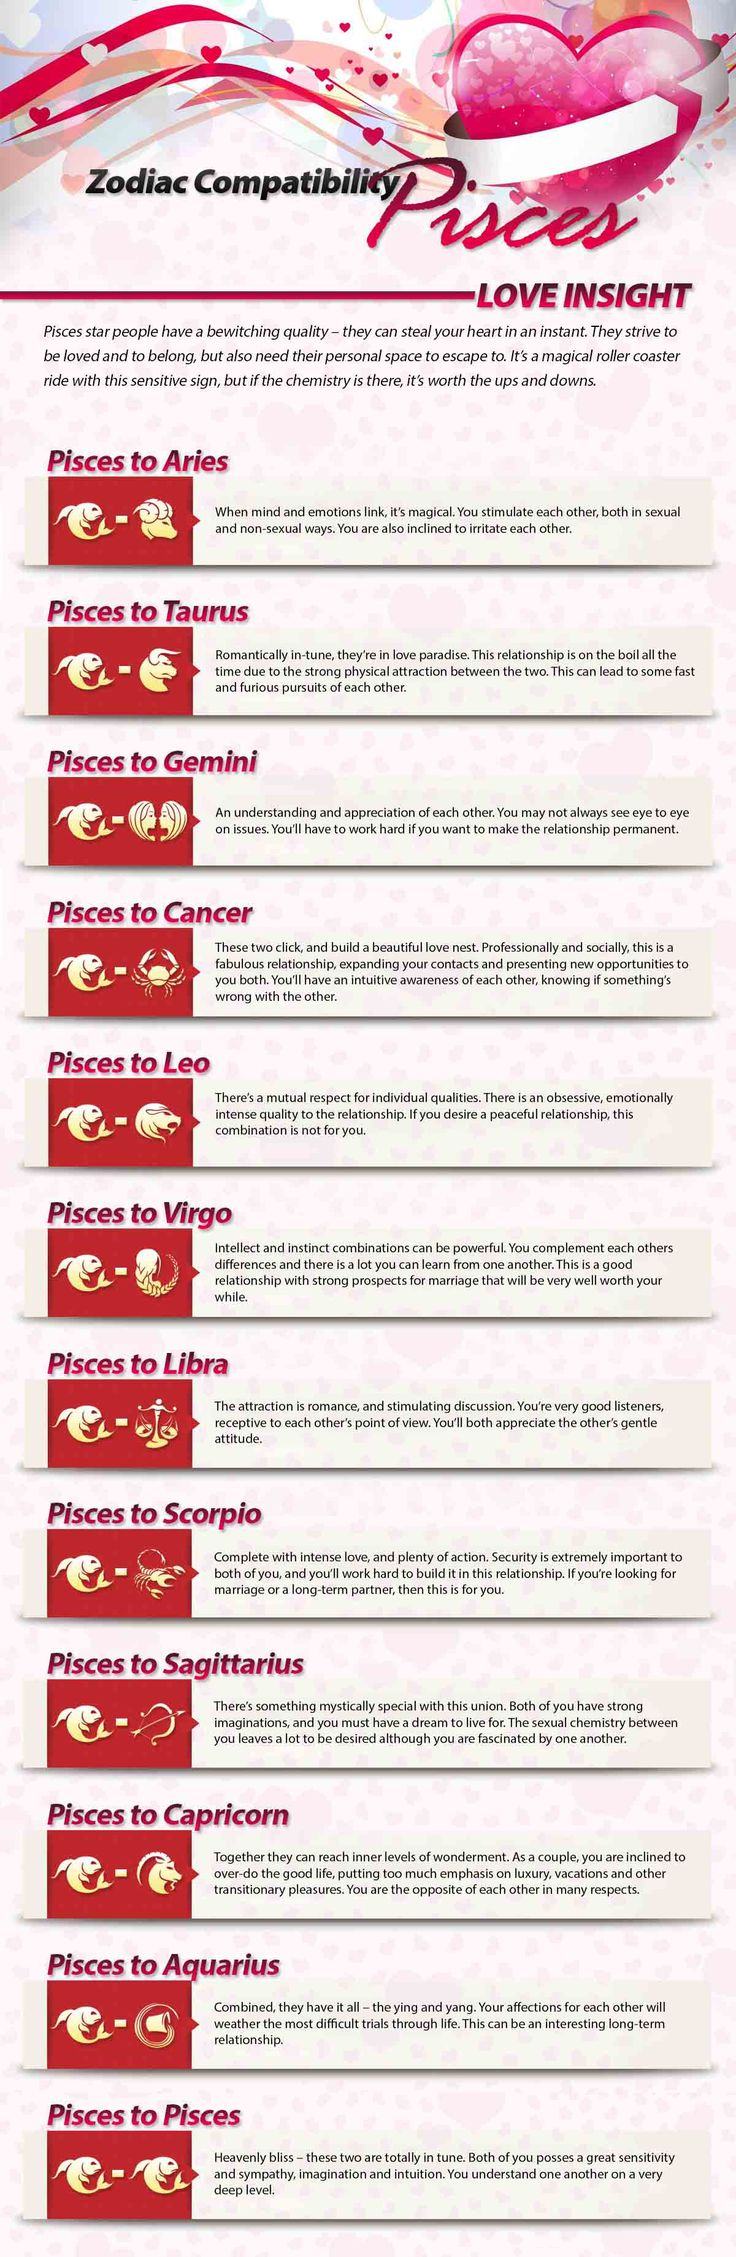 So glad my boyfriend is a Cancerian. Wouldn't like to be a Pisces going out with a Leo though!